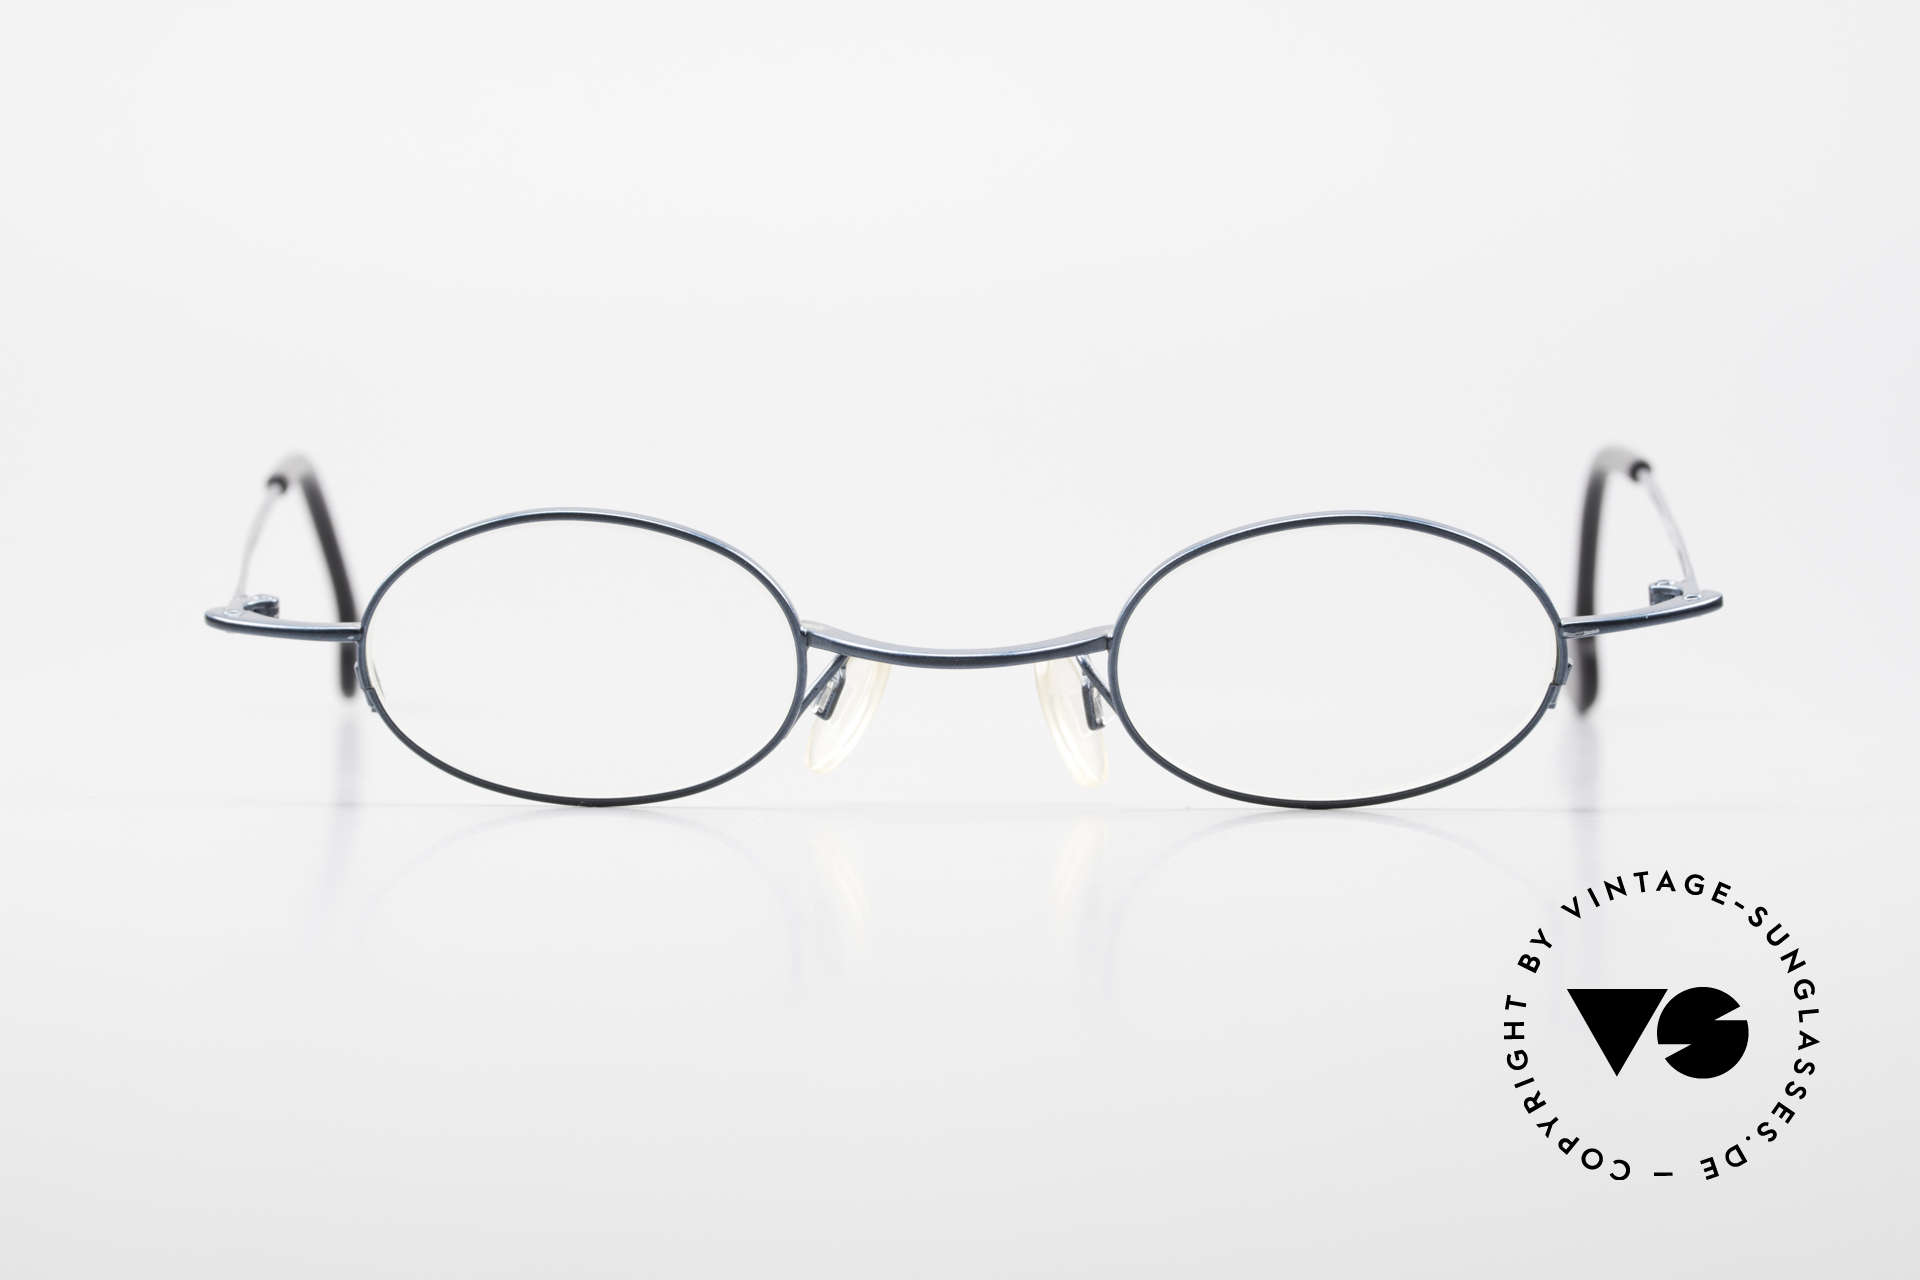 Theo Belgium Peter Oval Eyeglasses With Clip On, Size: medium, Made for Men and Women